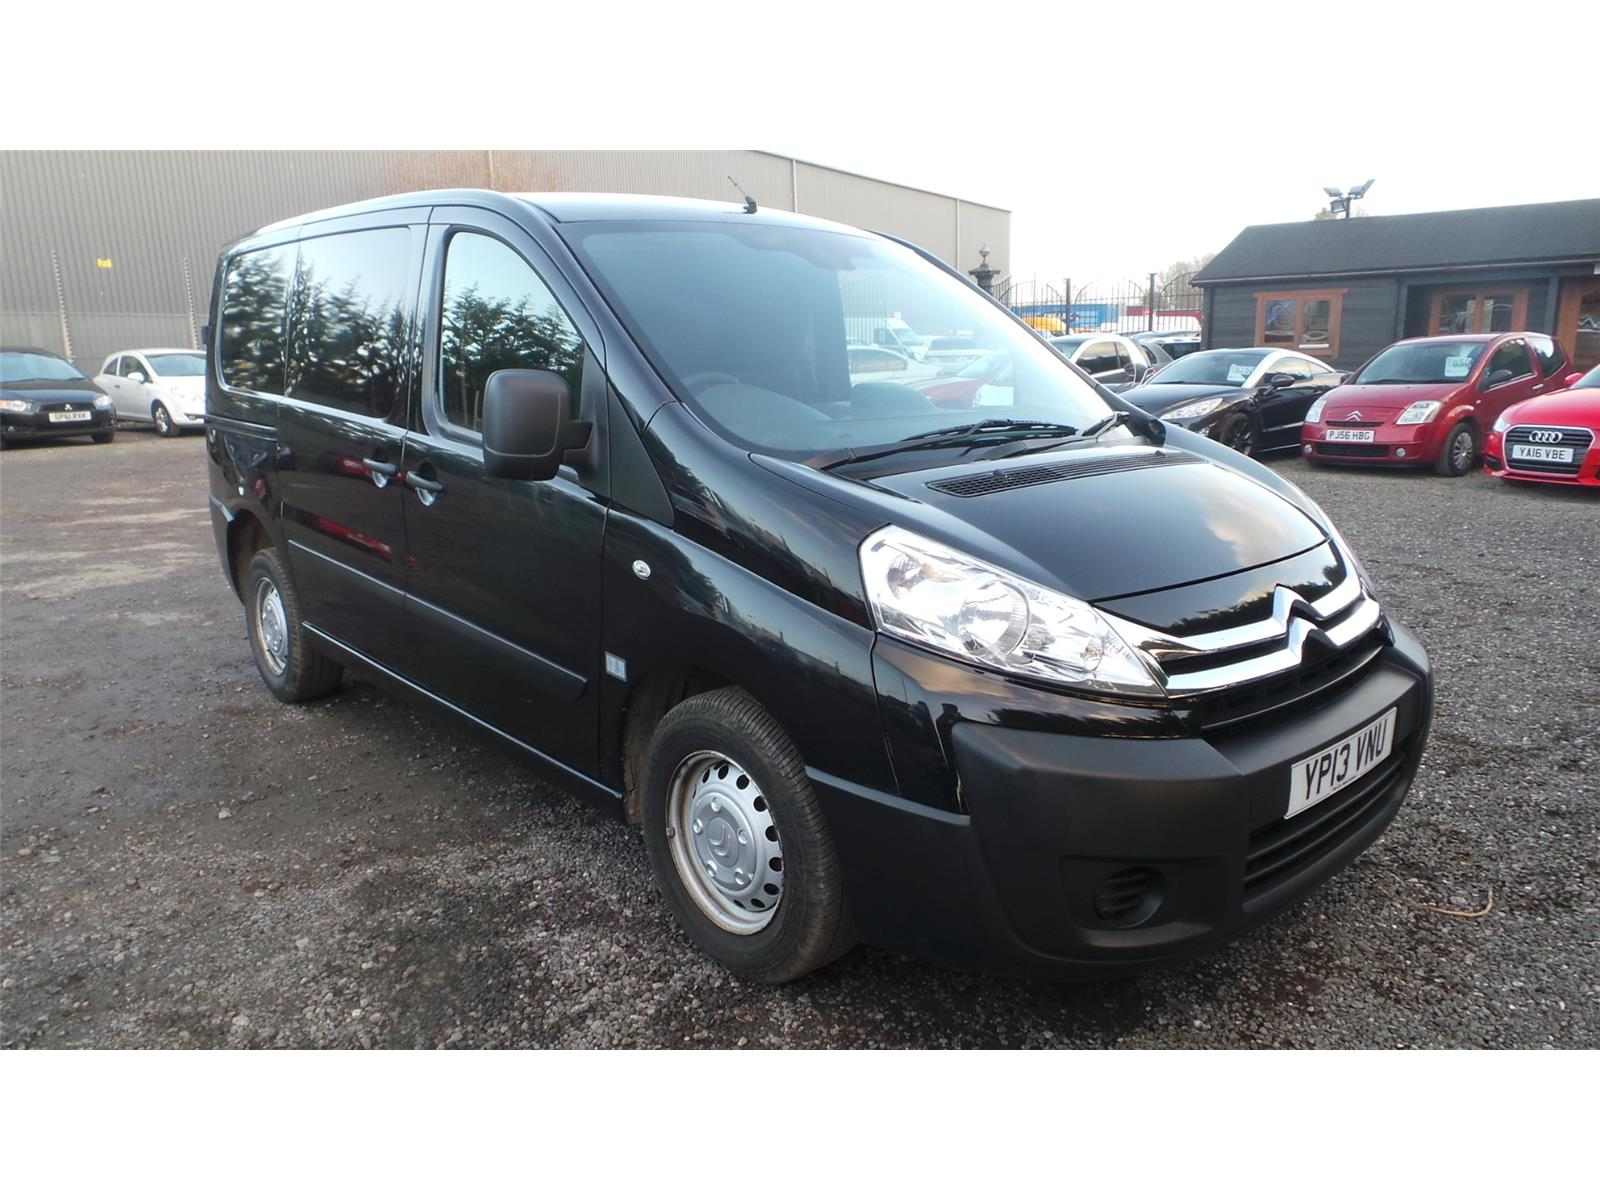 2013 Citroen Dispatch L1H1 1000Kg Level 1 1560 Diesel Manual 5 Speed L.C.V.